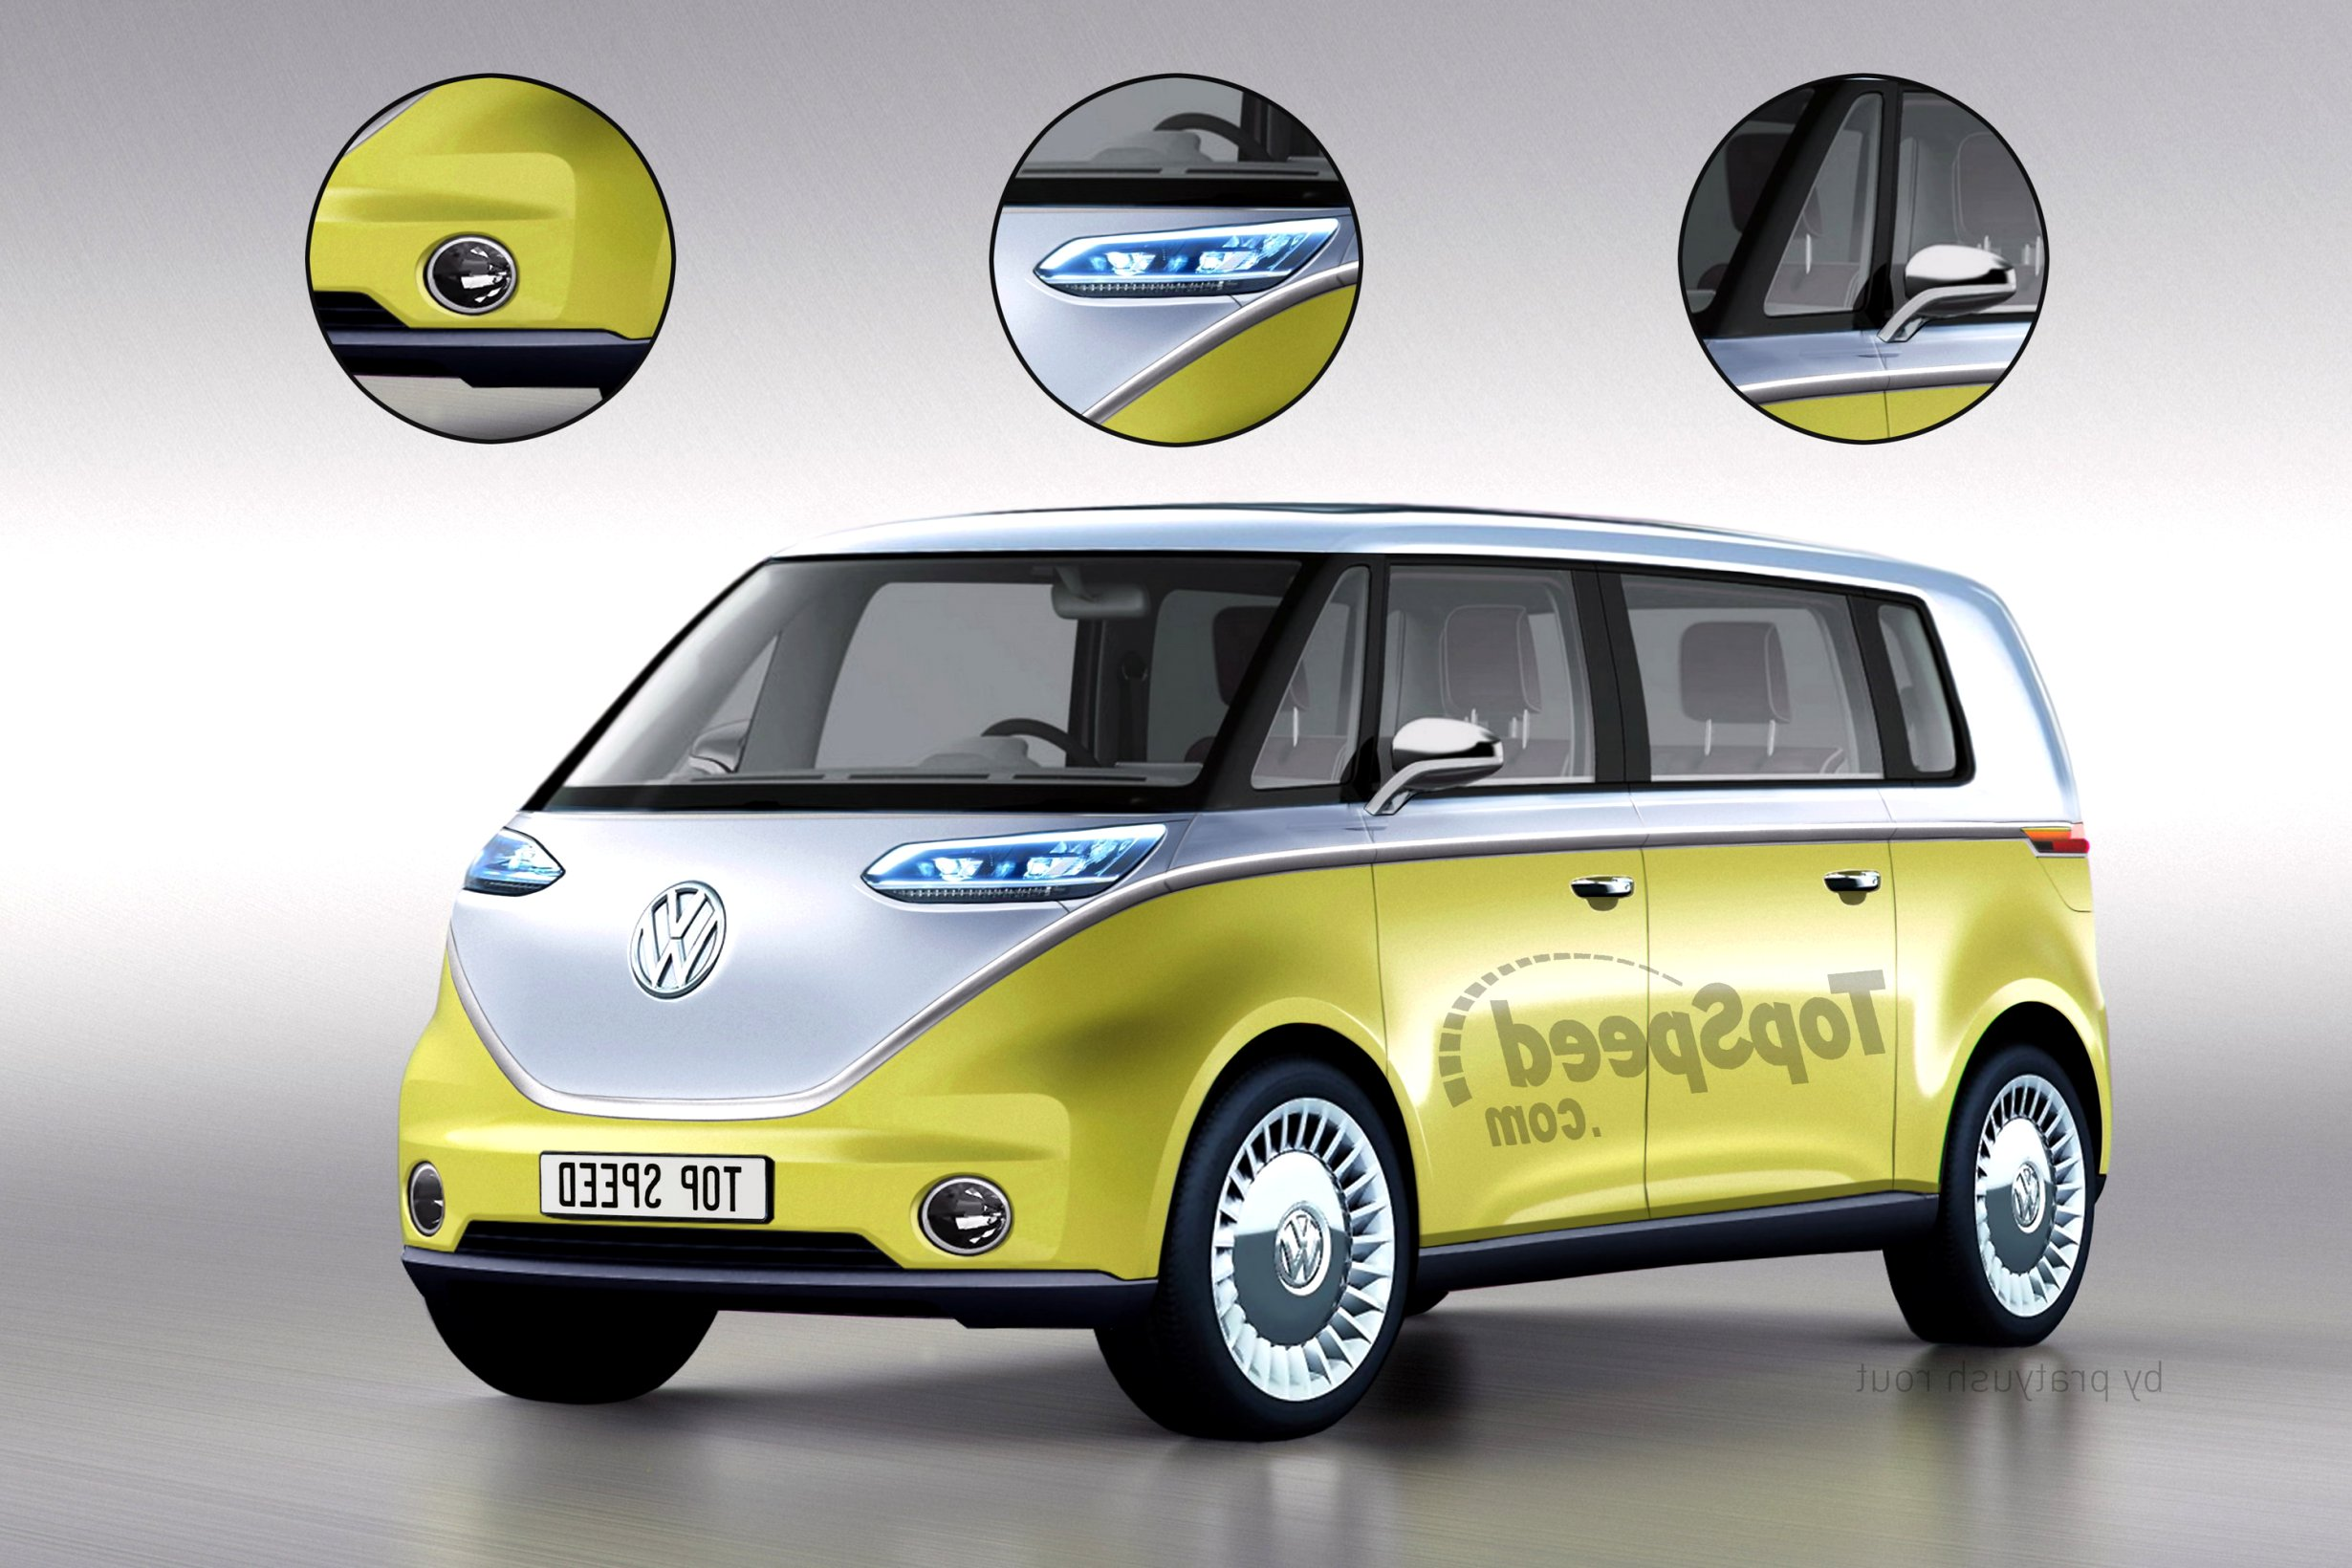 2020 volkswagen bus Price and Review